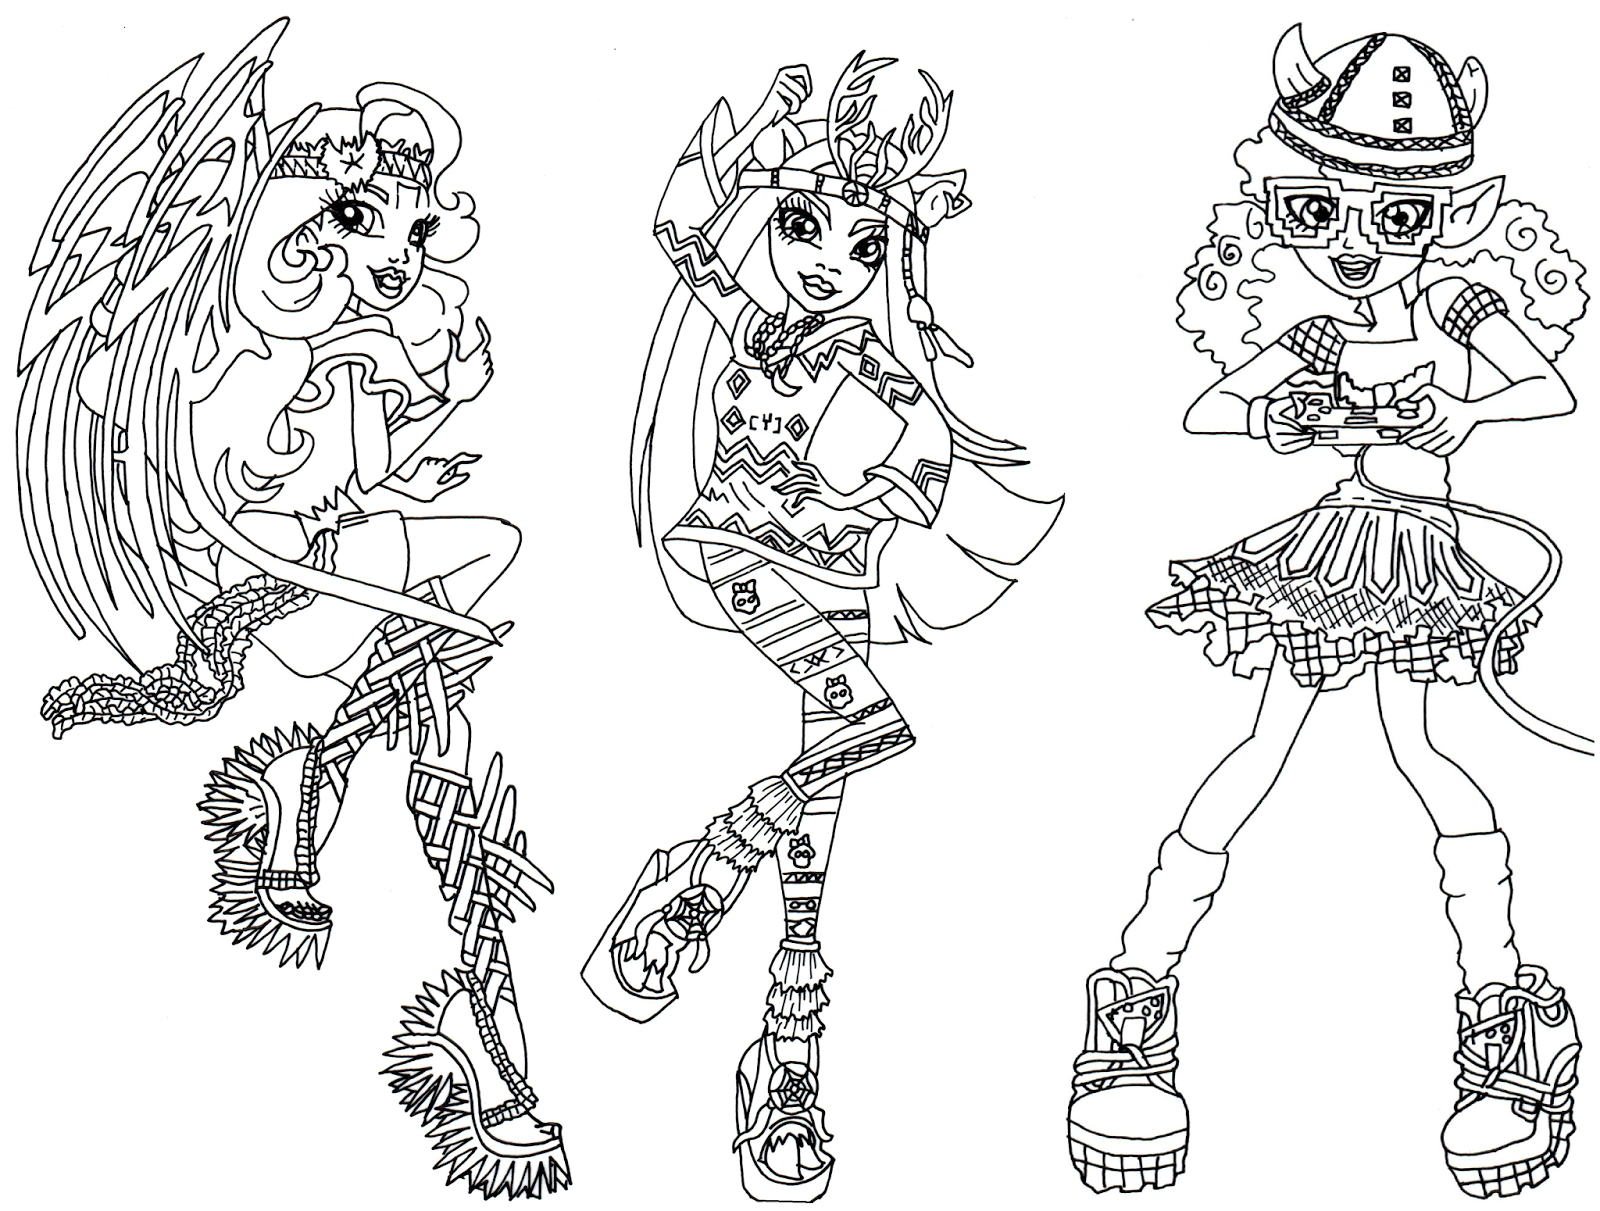 Free Printable Monster High Coloring Pages: Brand Boo